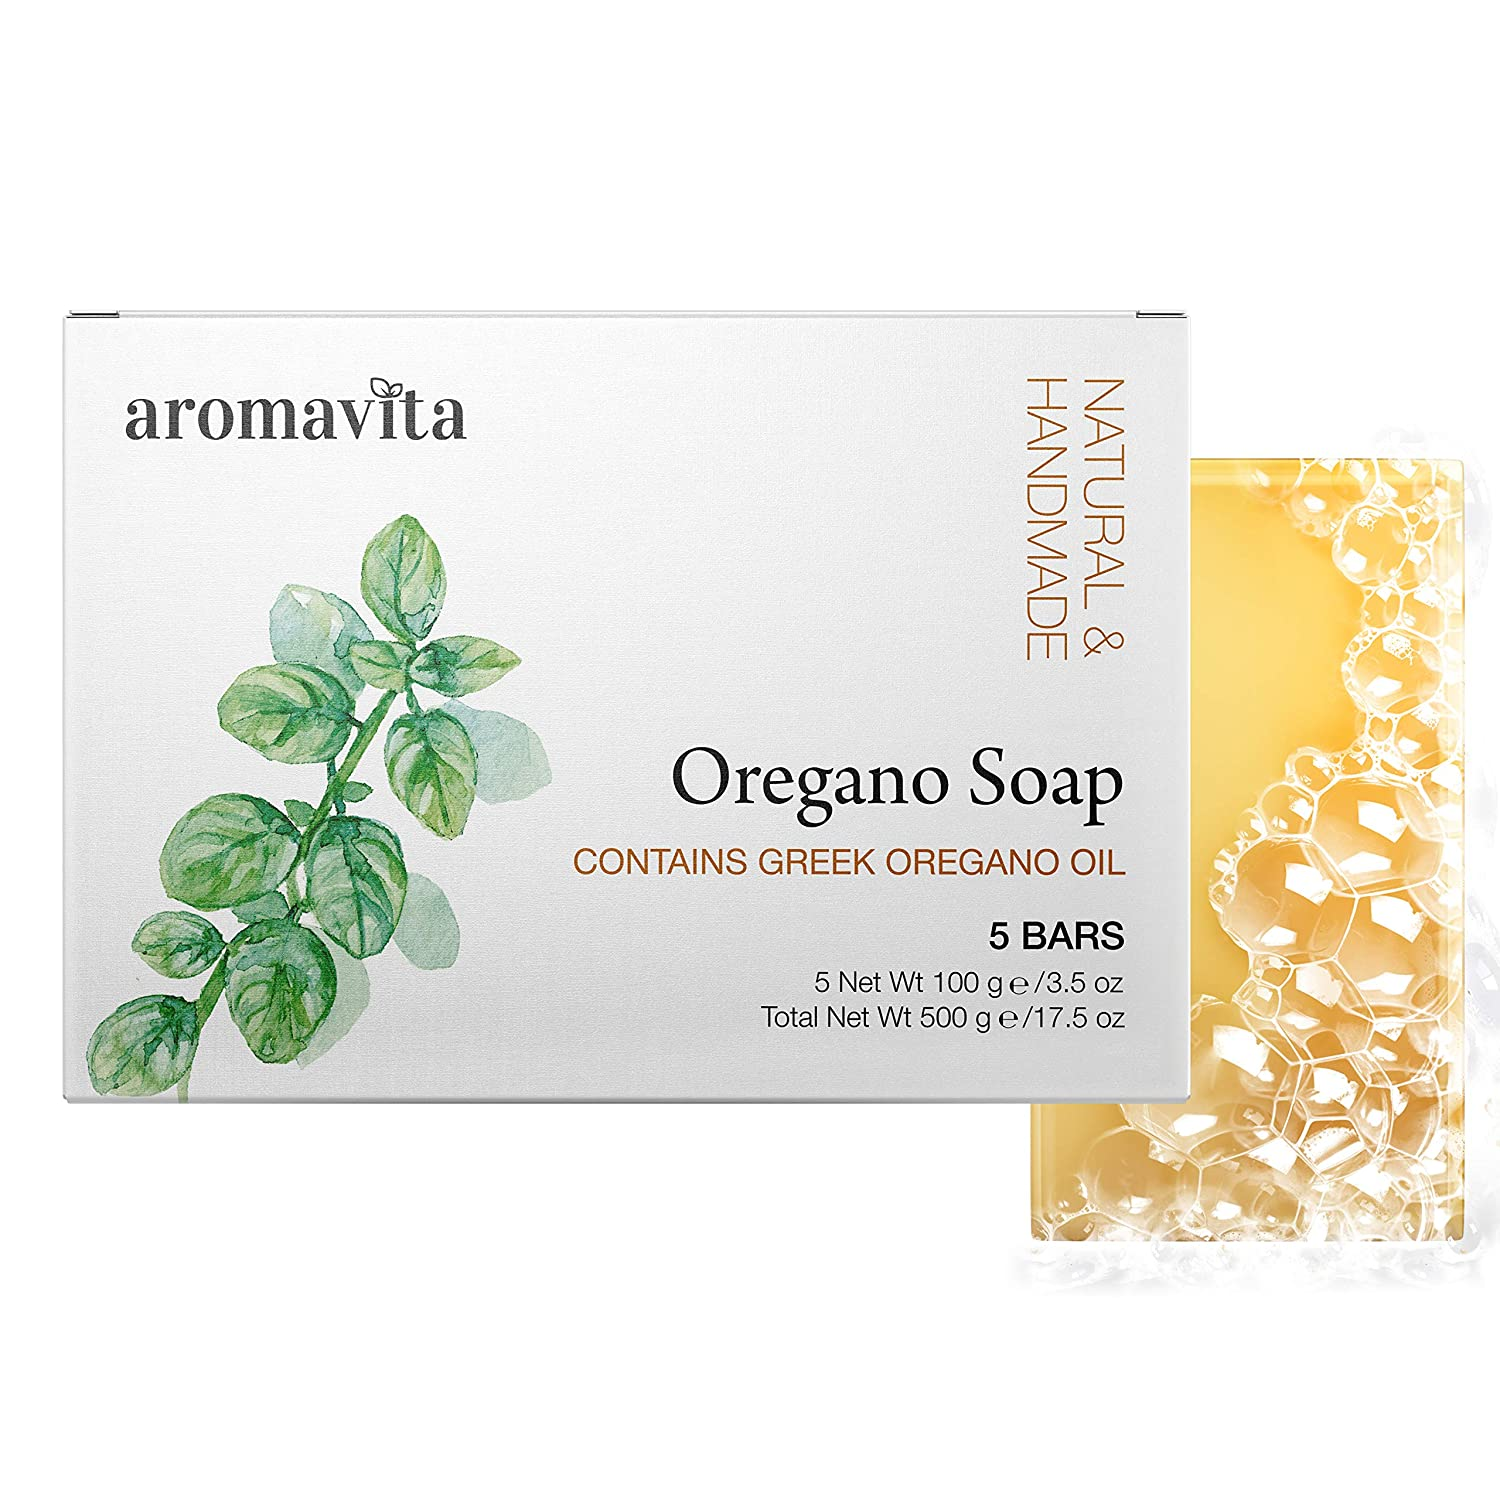 Aromavita Oregano Oil Soap - Natural Plant Therapy Hand Soap or Body Wash - Topical Therapeutic Skin Cleanser for Acne, Eczema, Foot and Nail Problems - 5 Pack